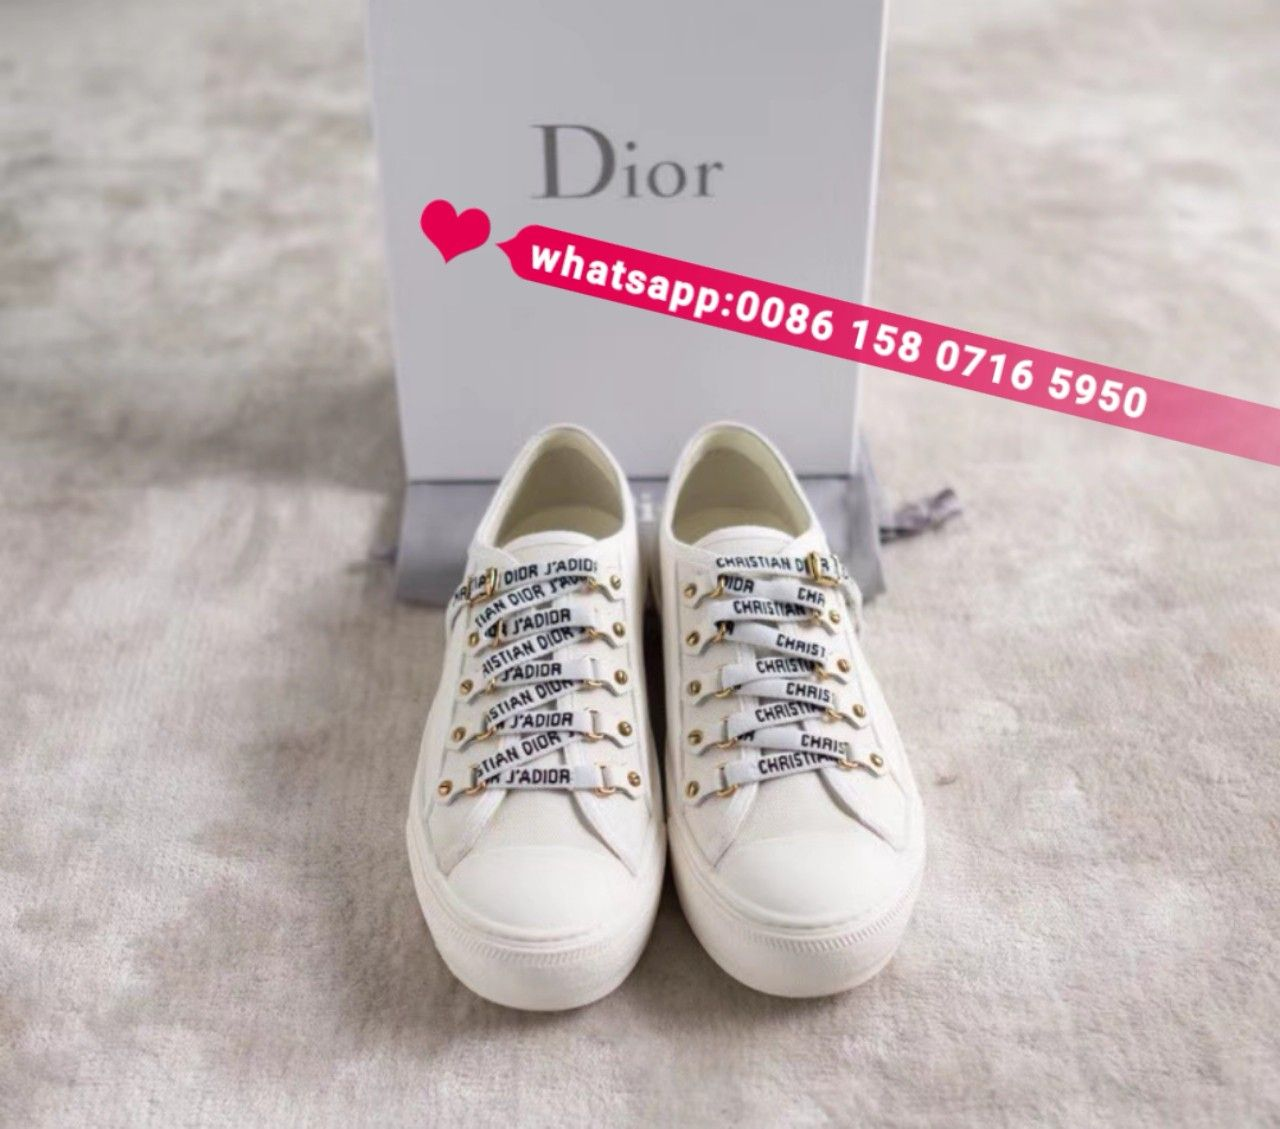 Christian Dior white sneakers trainers